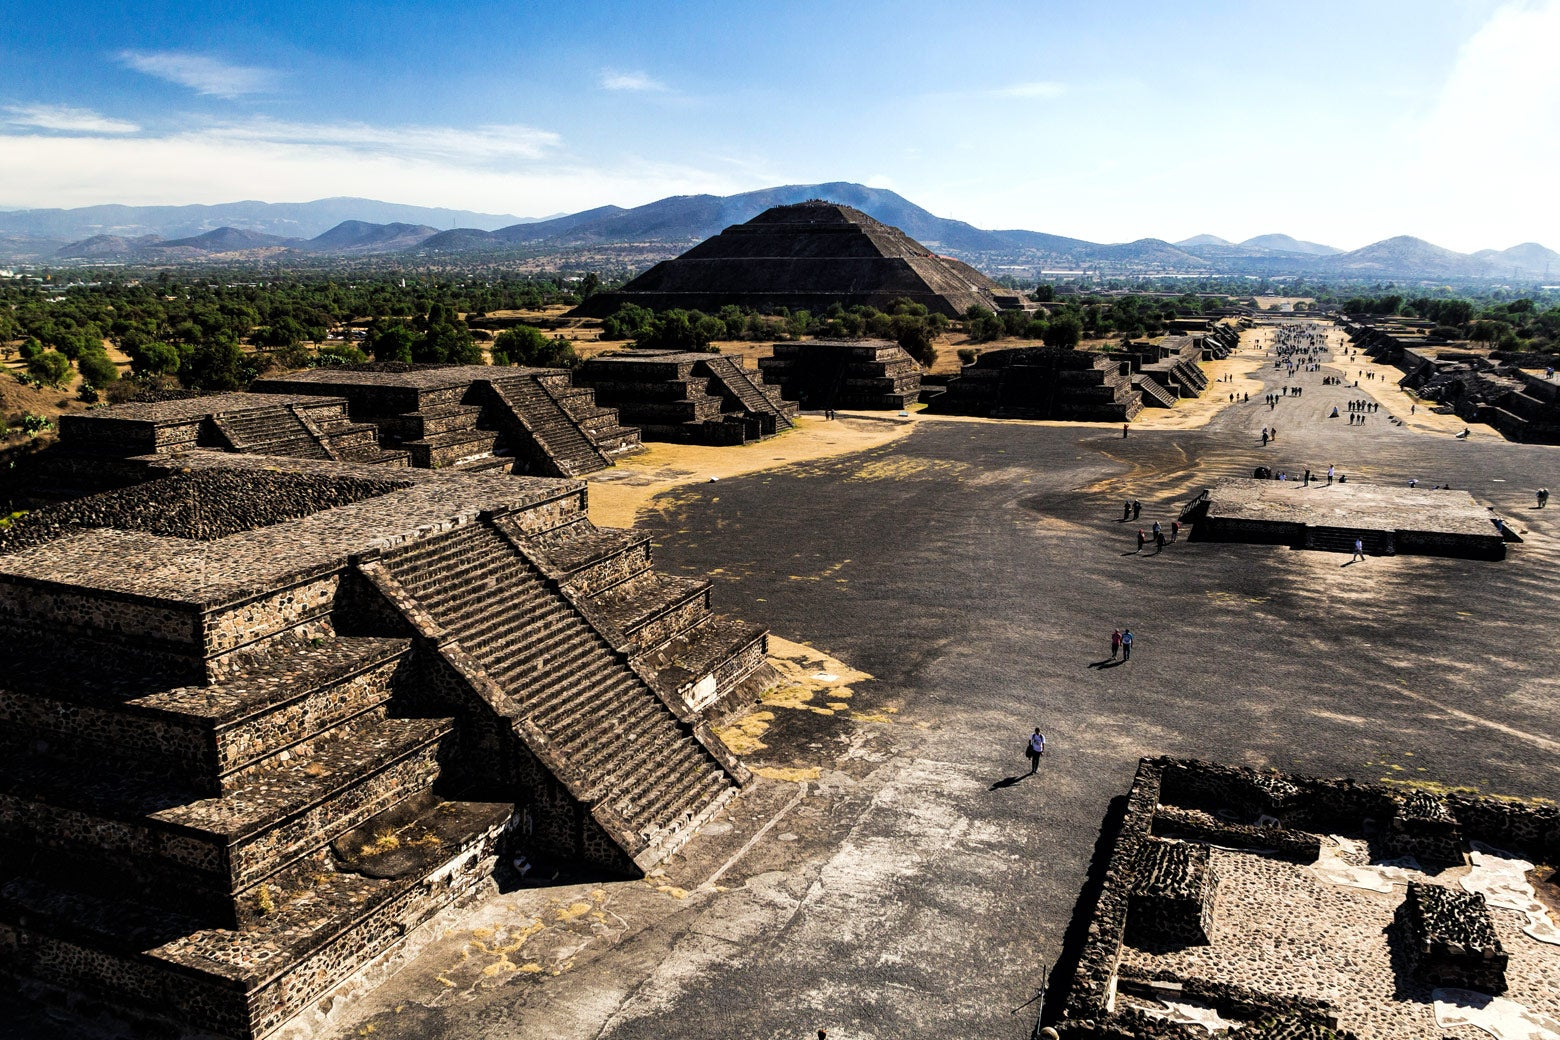 View from the Moon Pyramid to the Road of the Dead in the ancient Teotihuacán Pyramids in Mexico.